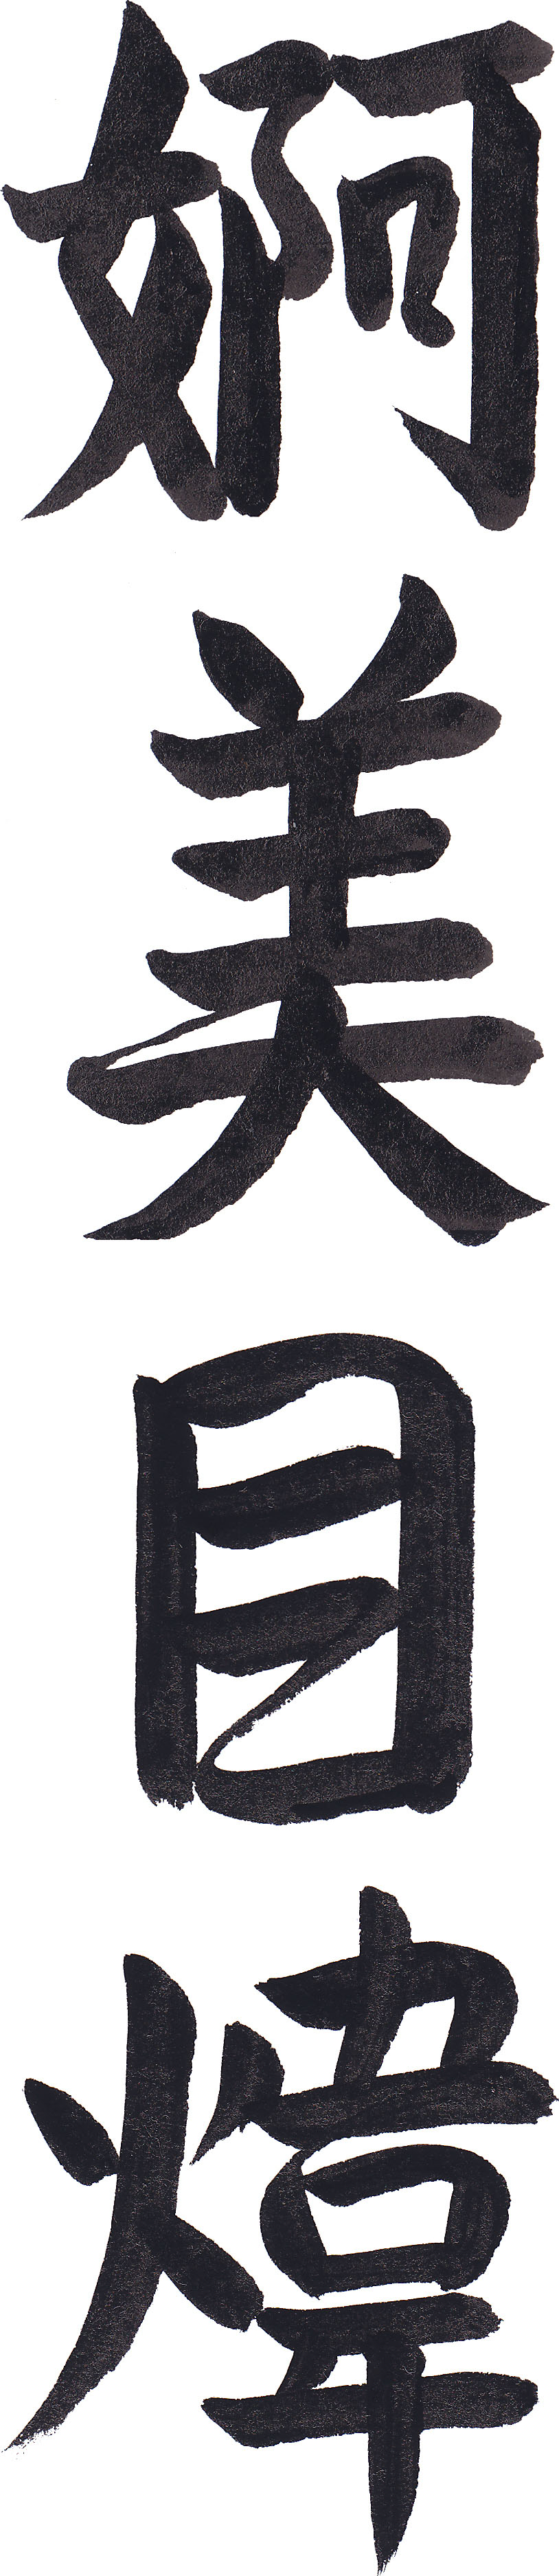 Full Name in Kanji Vertical Japanese Tattoo Design by Master Eri Takase